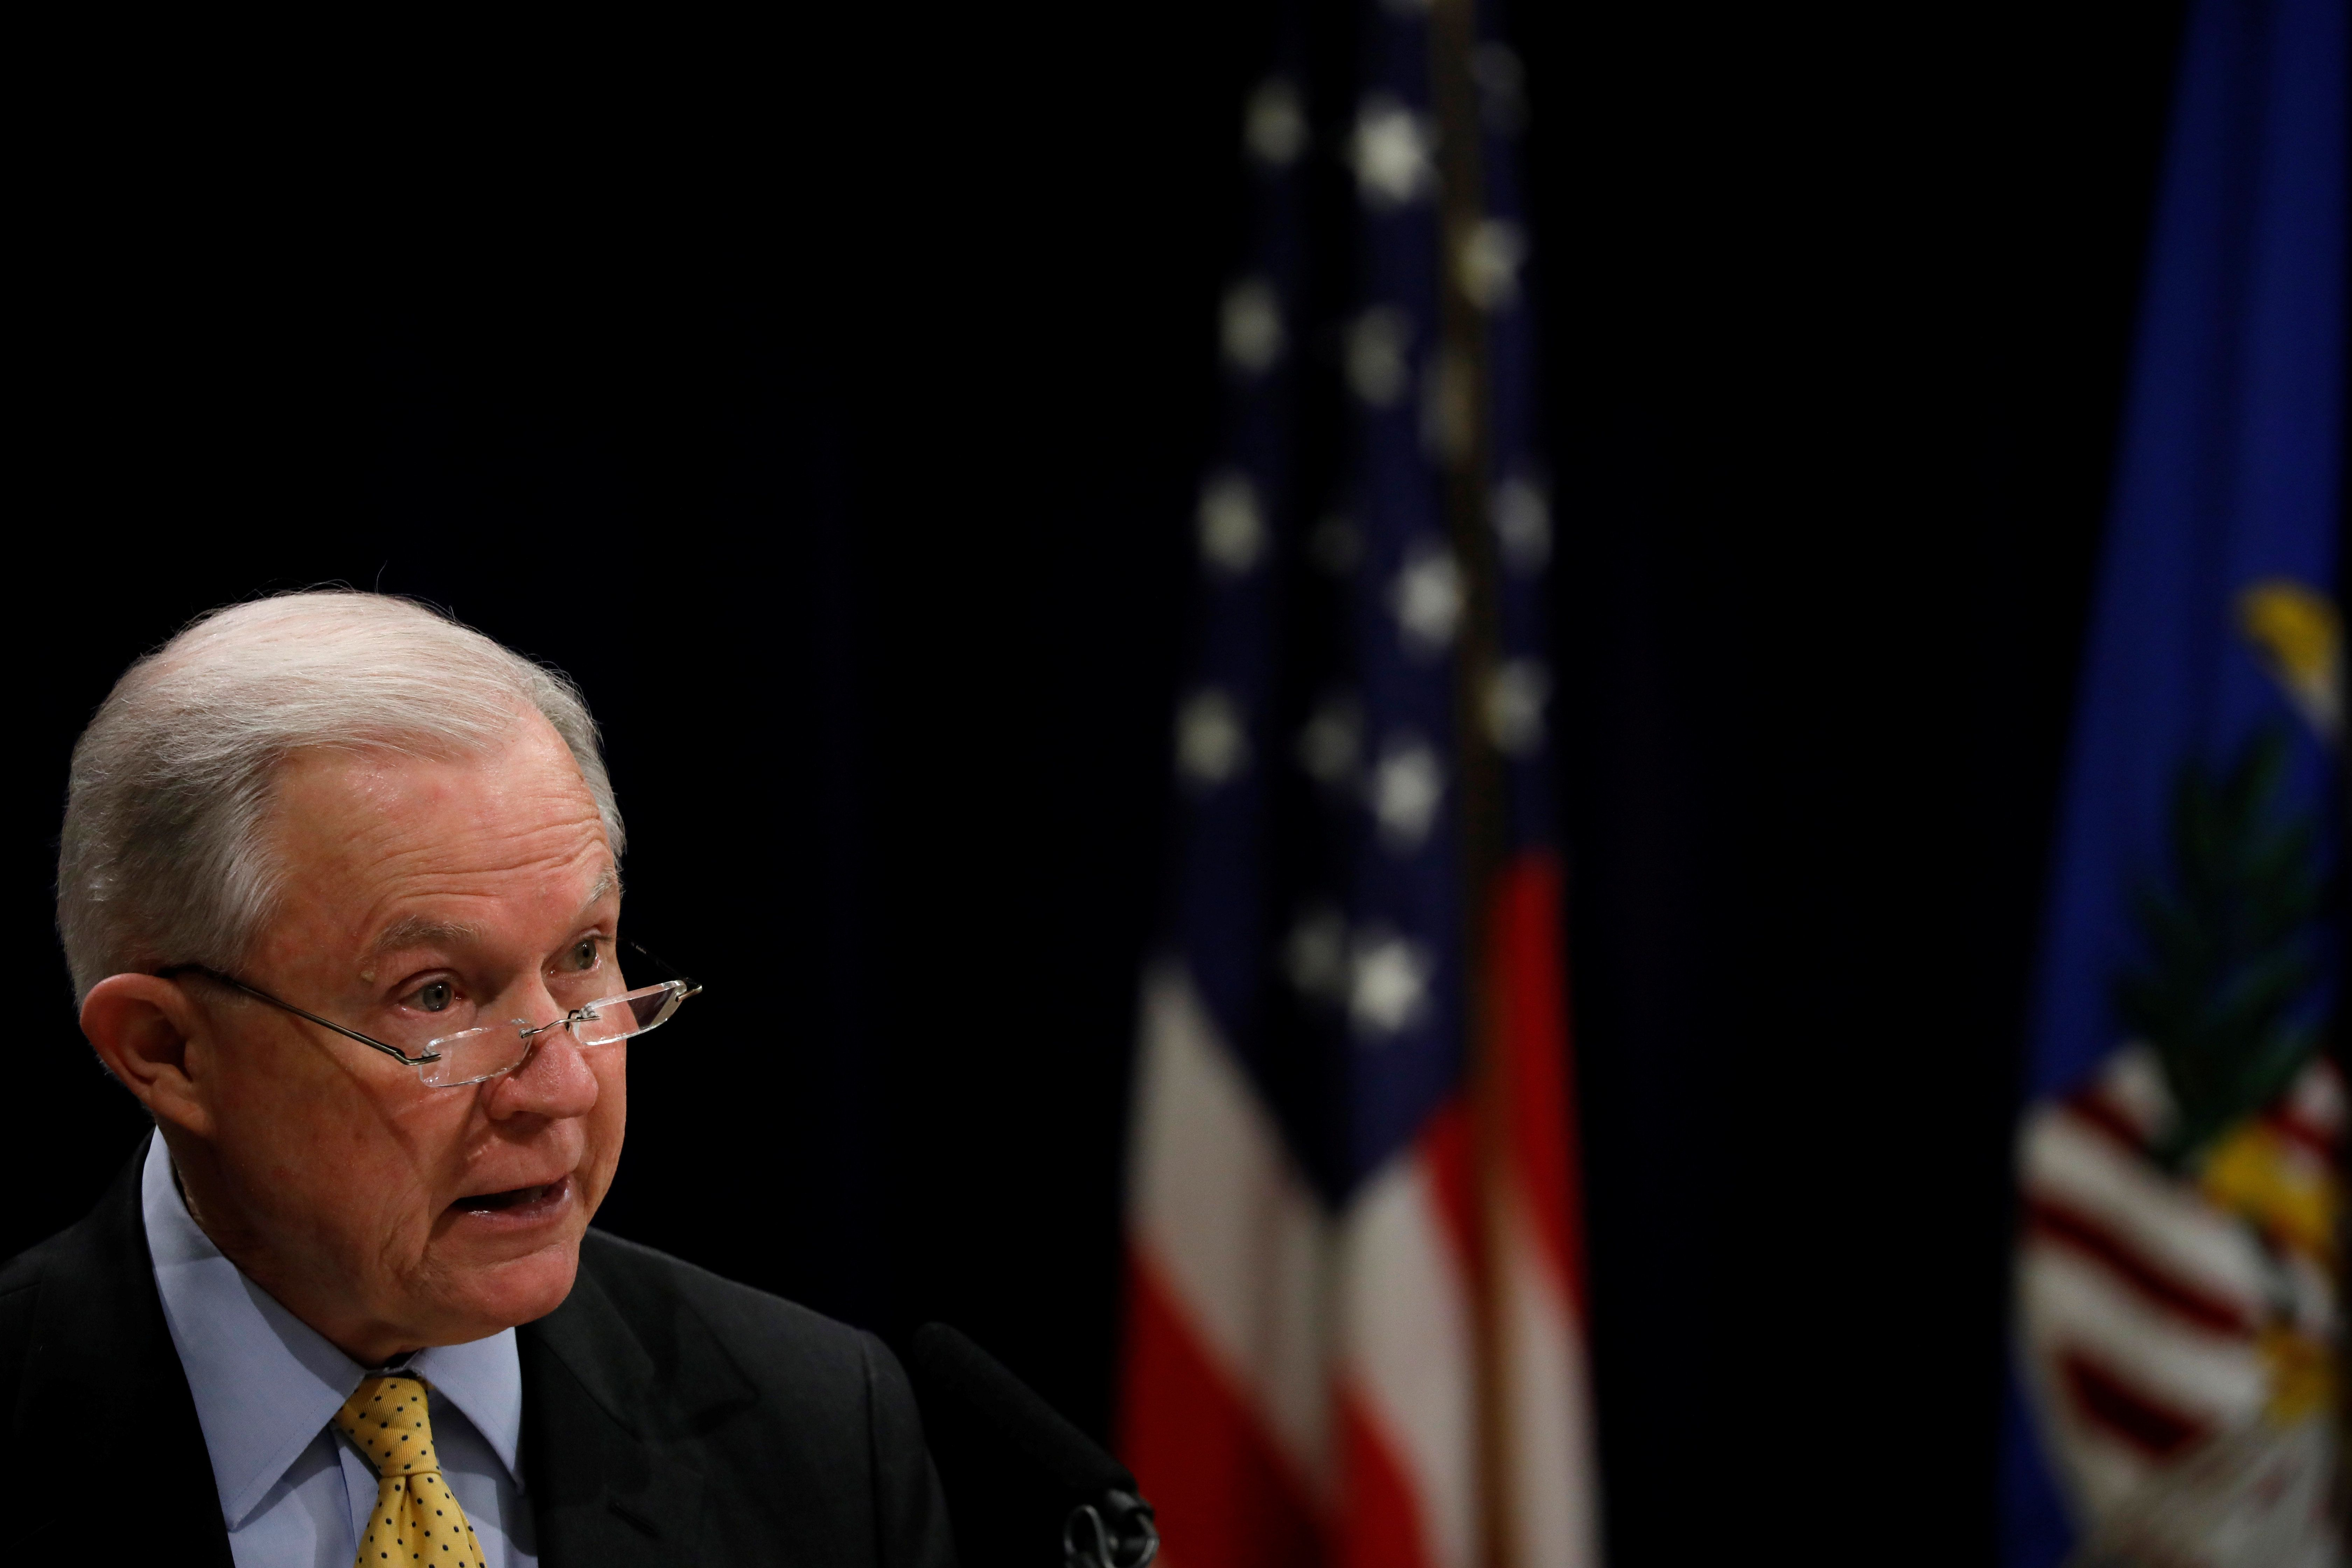 United States Attorney General Jeff Sessions speaks at a summit about combating human trafficking at the Department of Justice in Washington, U.S., February 2, 2018. REUTERS/Aaron P. Bernstein